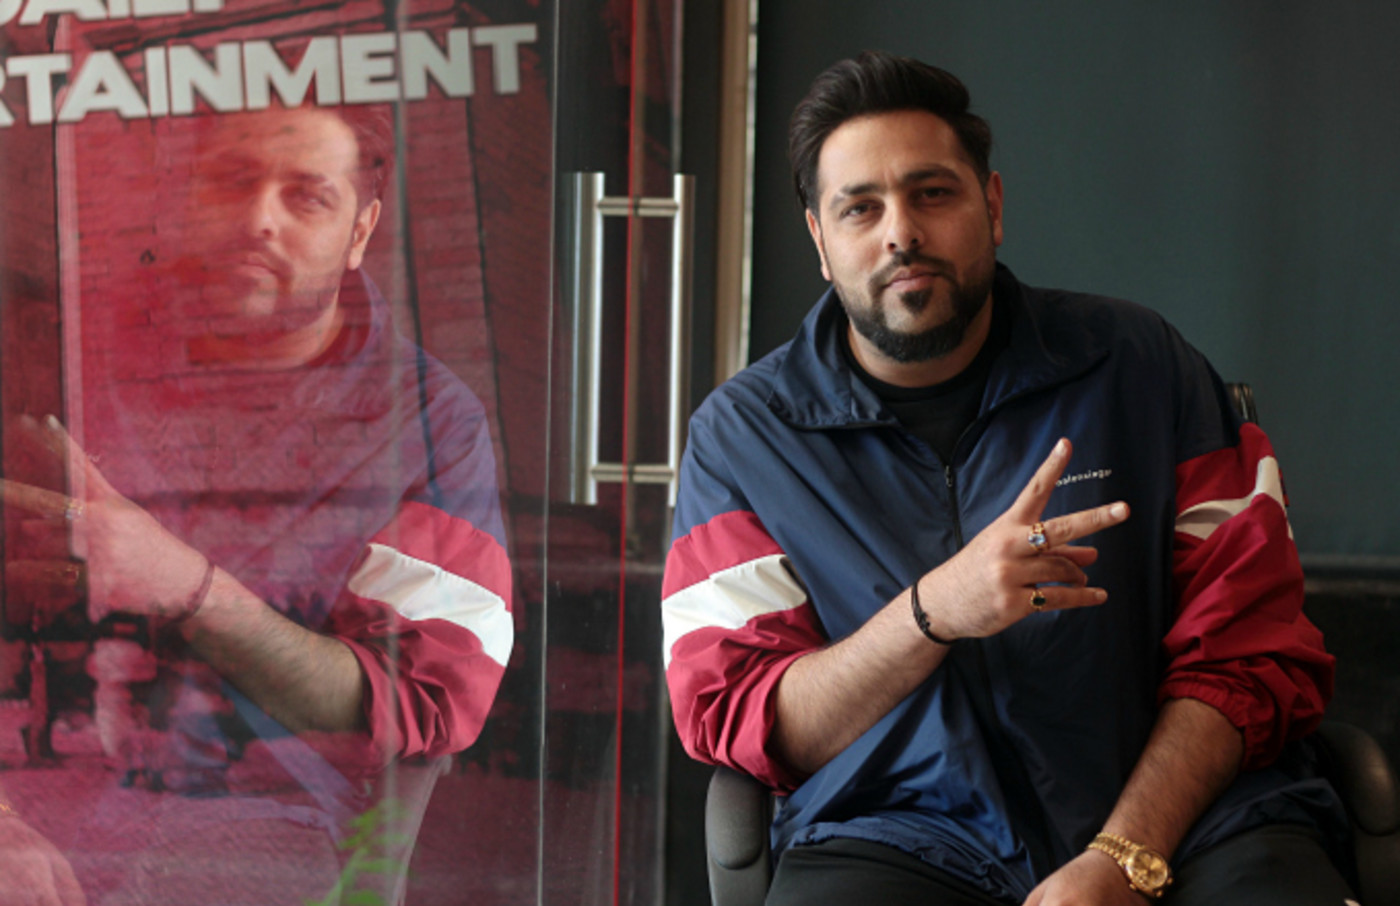 Bollywood singer and rapper Badshah